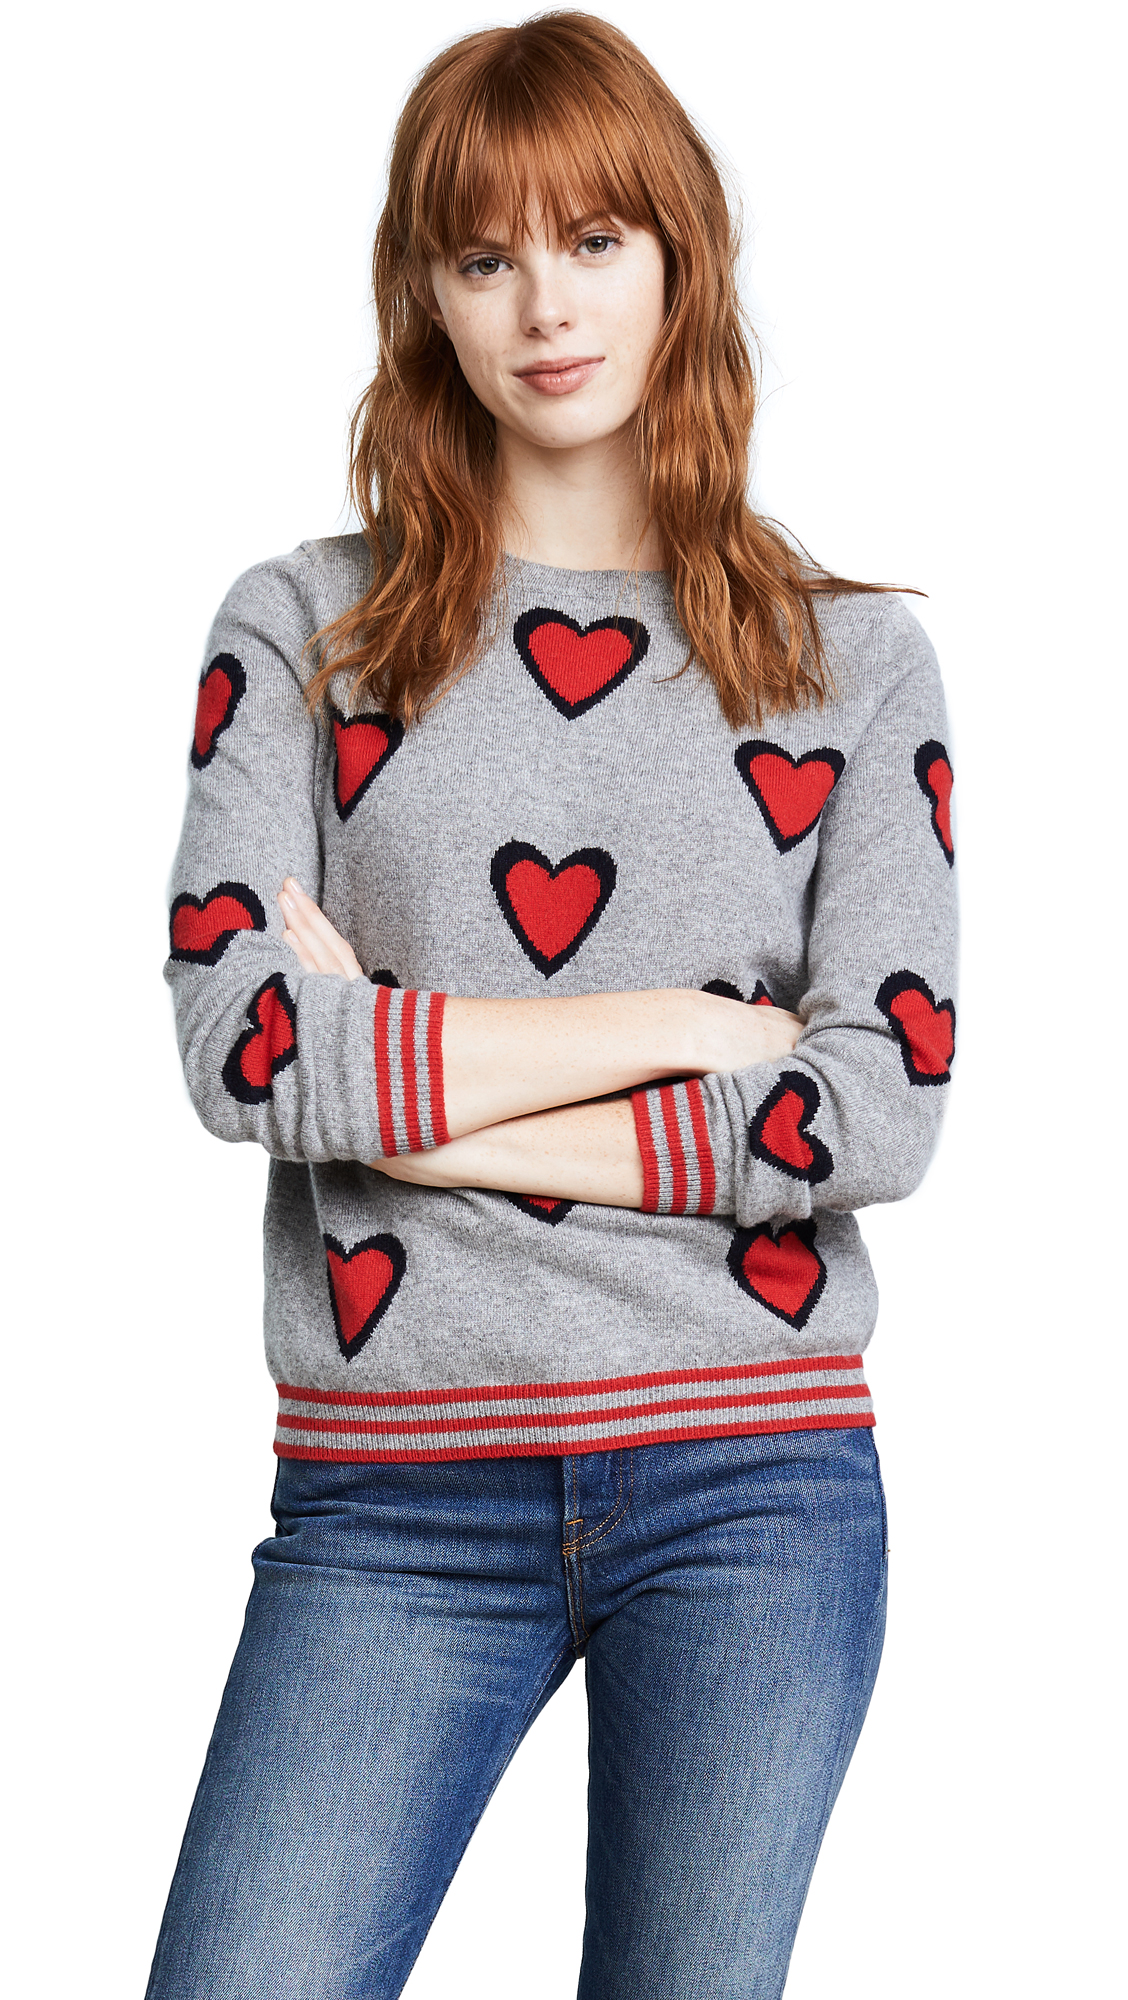 Chinti and Parker Allover Heart Burst Sweater - Grey/Navy/Cherry